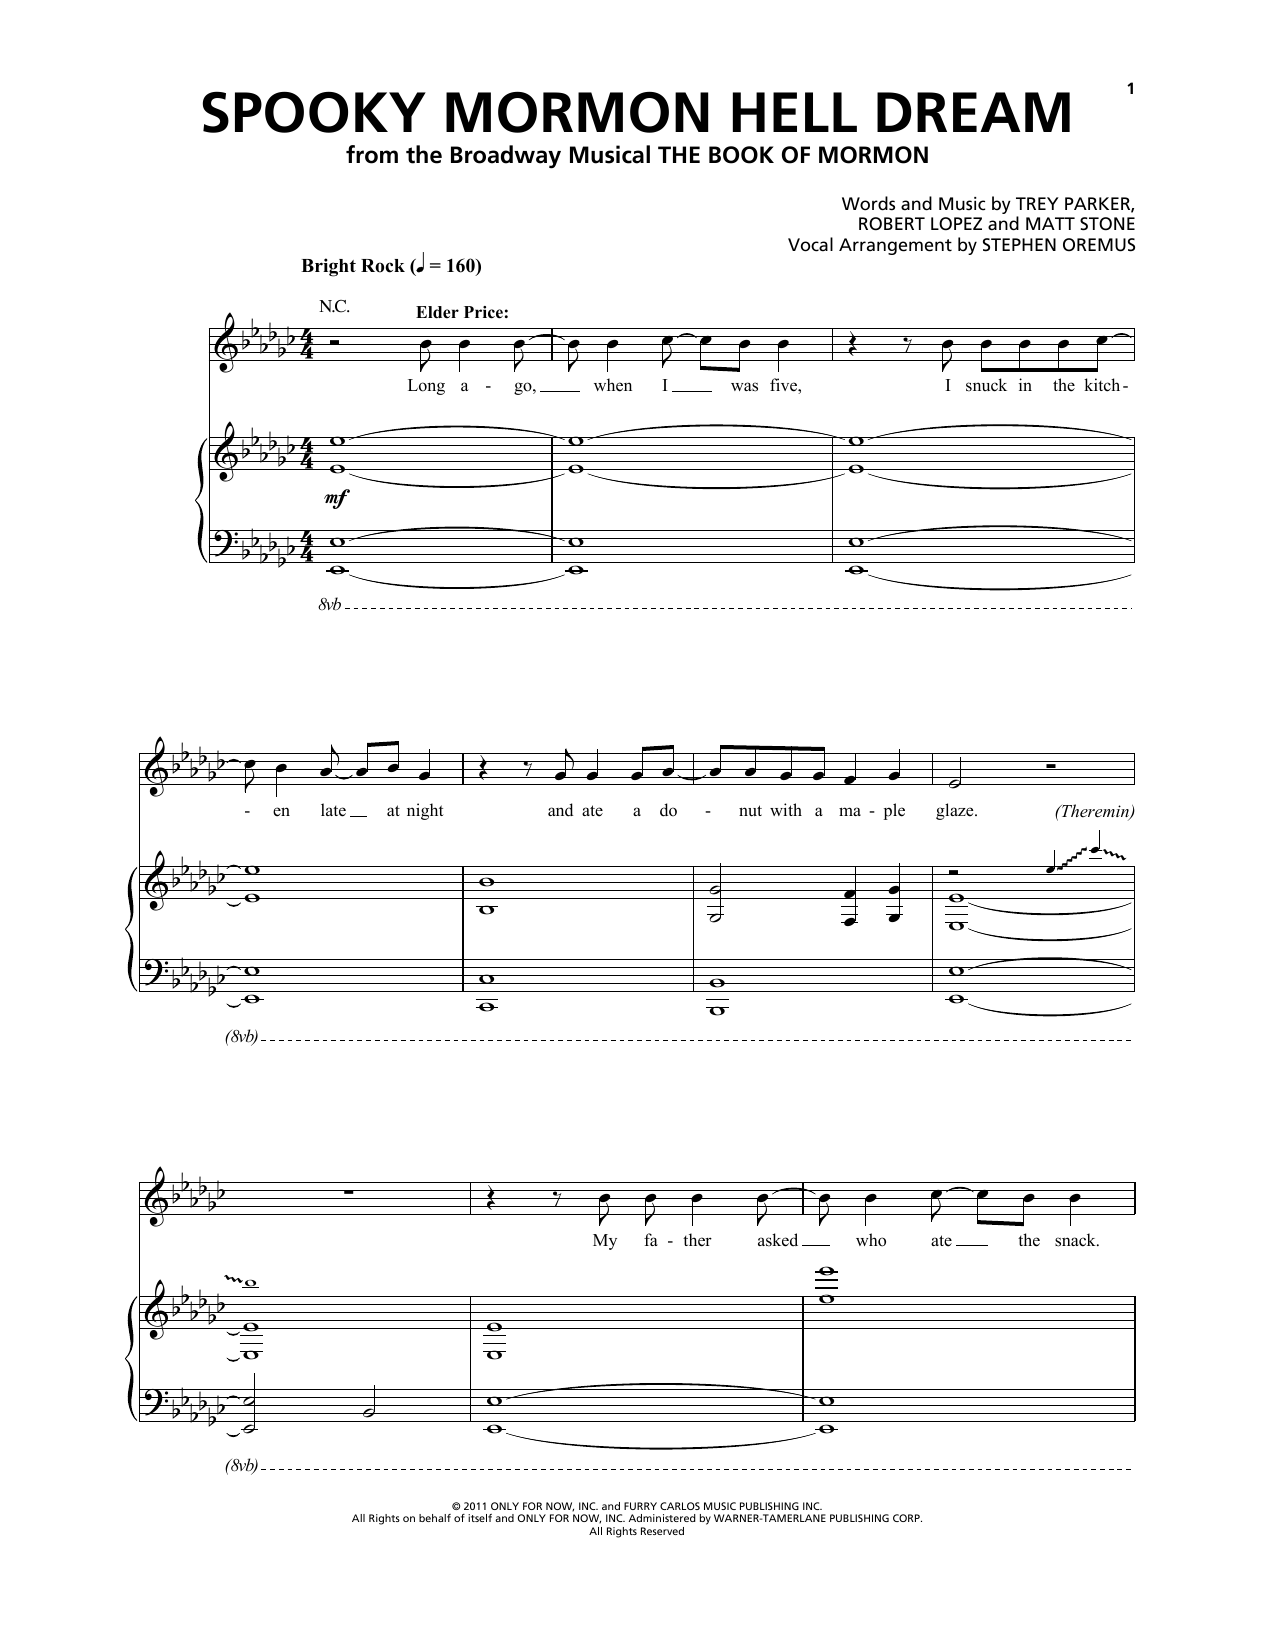 Spooky Mormon Hell Dream (from The Book of Mormon) Sheet Music